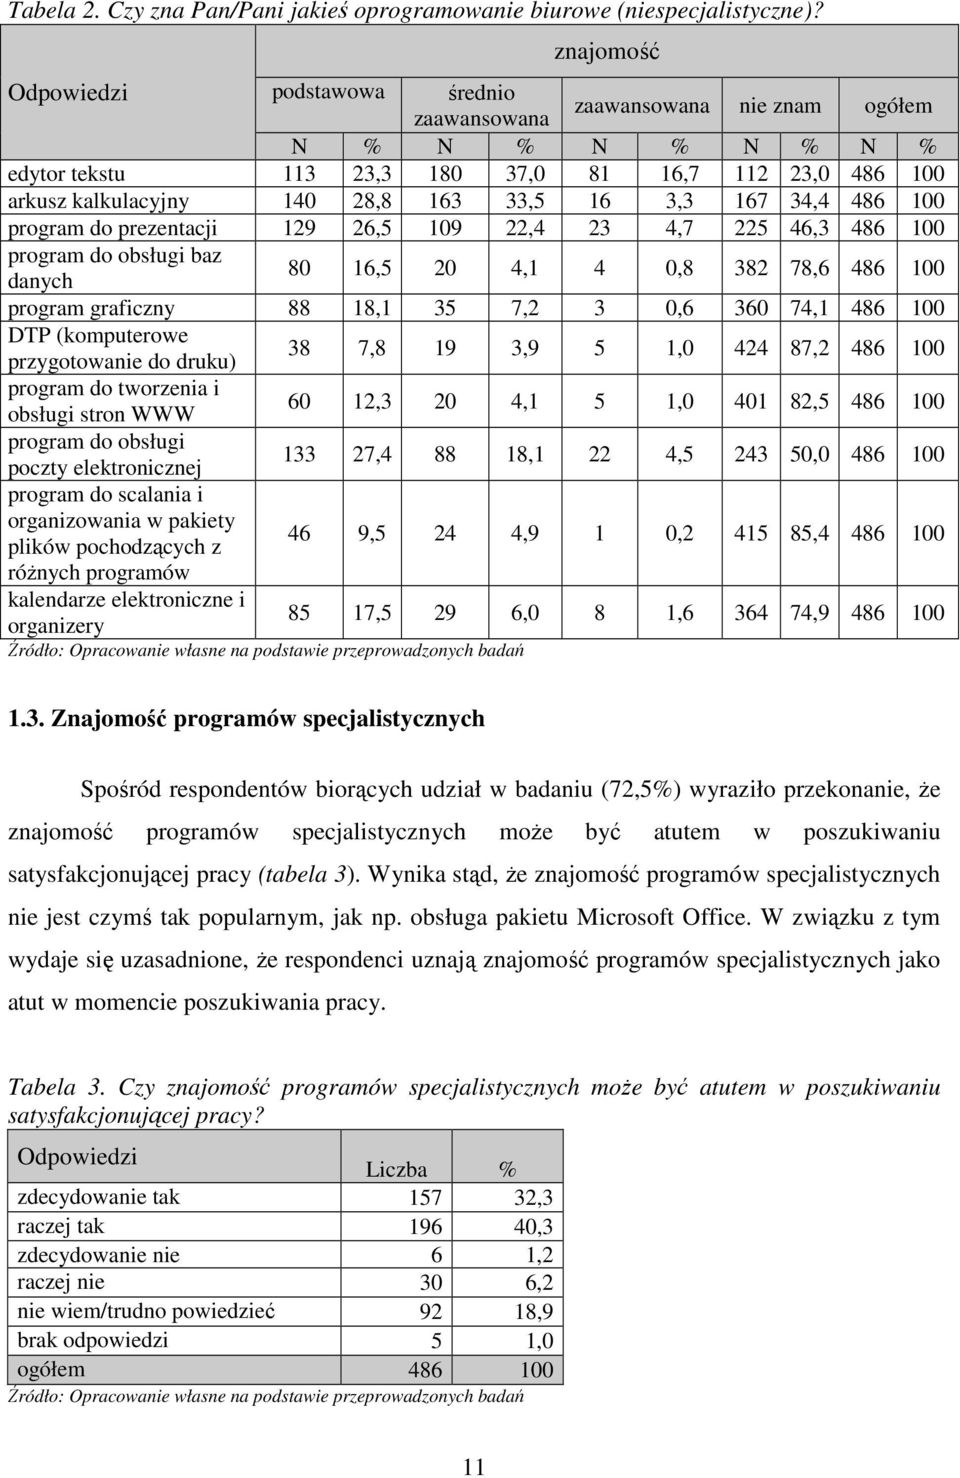 3,3 167 34,4 486 100 program do prezentacji 129 26,5 109 22,4 23 4,7 225 46,3 486 100 program do obsługi baz danych 80 16,5 20 4,1 4 0,8 382 78,6 486 100 program graficzny 88 18,1 35 7,2 3 0,6 360